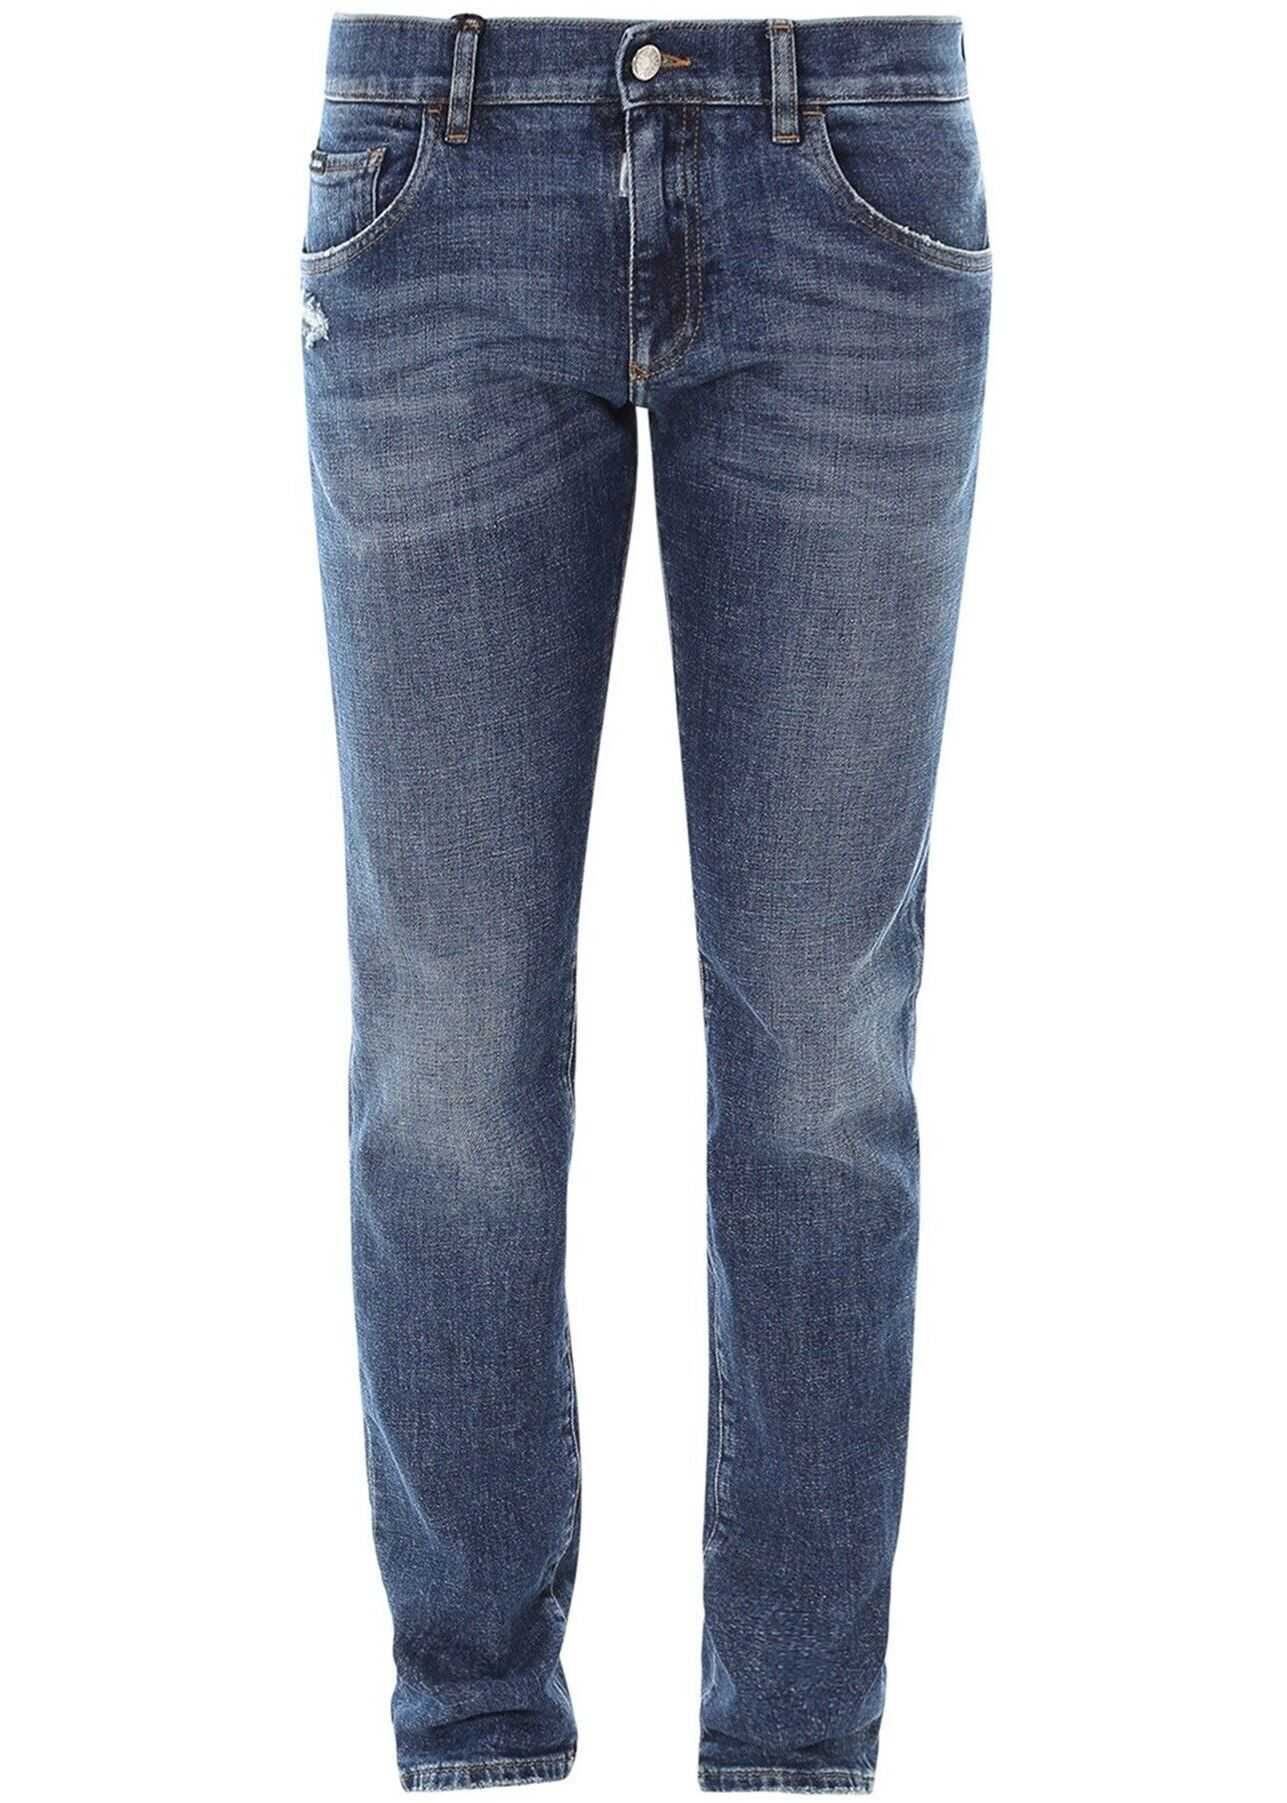 Dolce & Gabbana Faded Denim Jeans In Blue Blue imagine